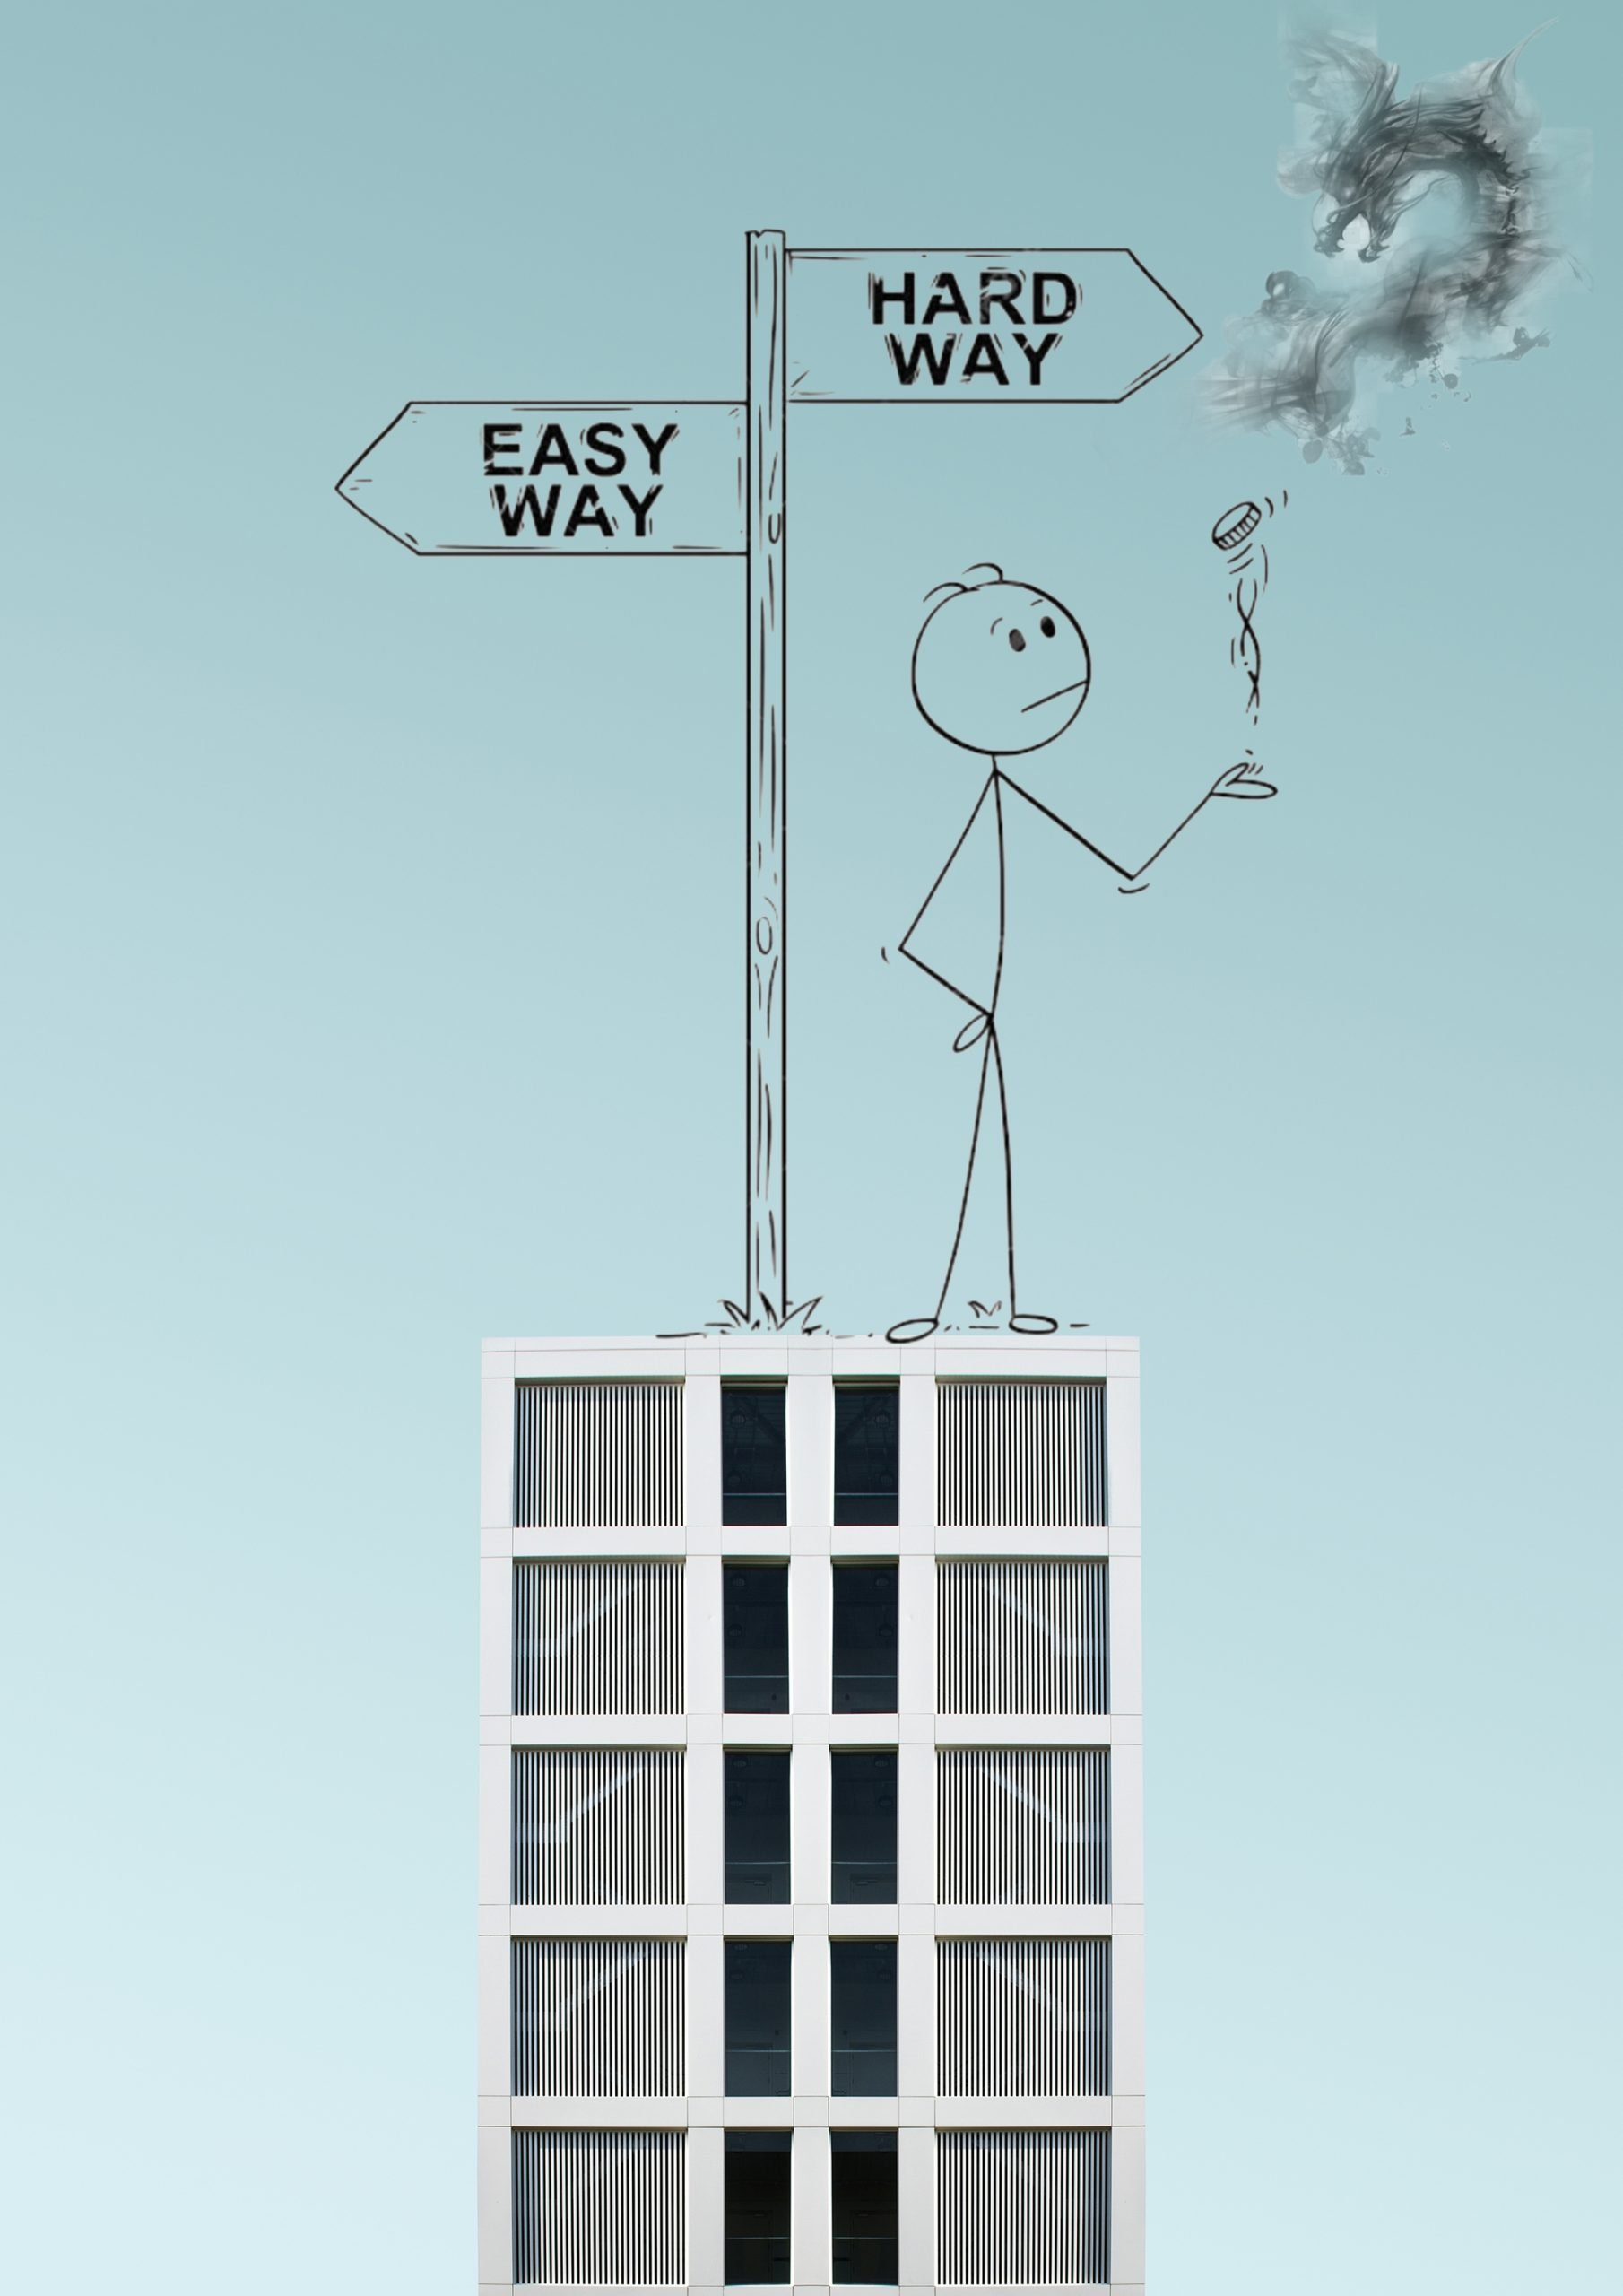 Easy and hard way illustration